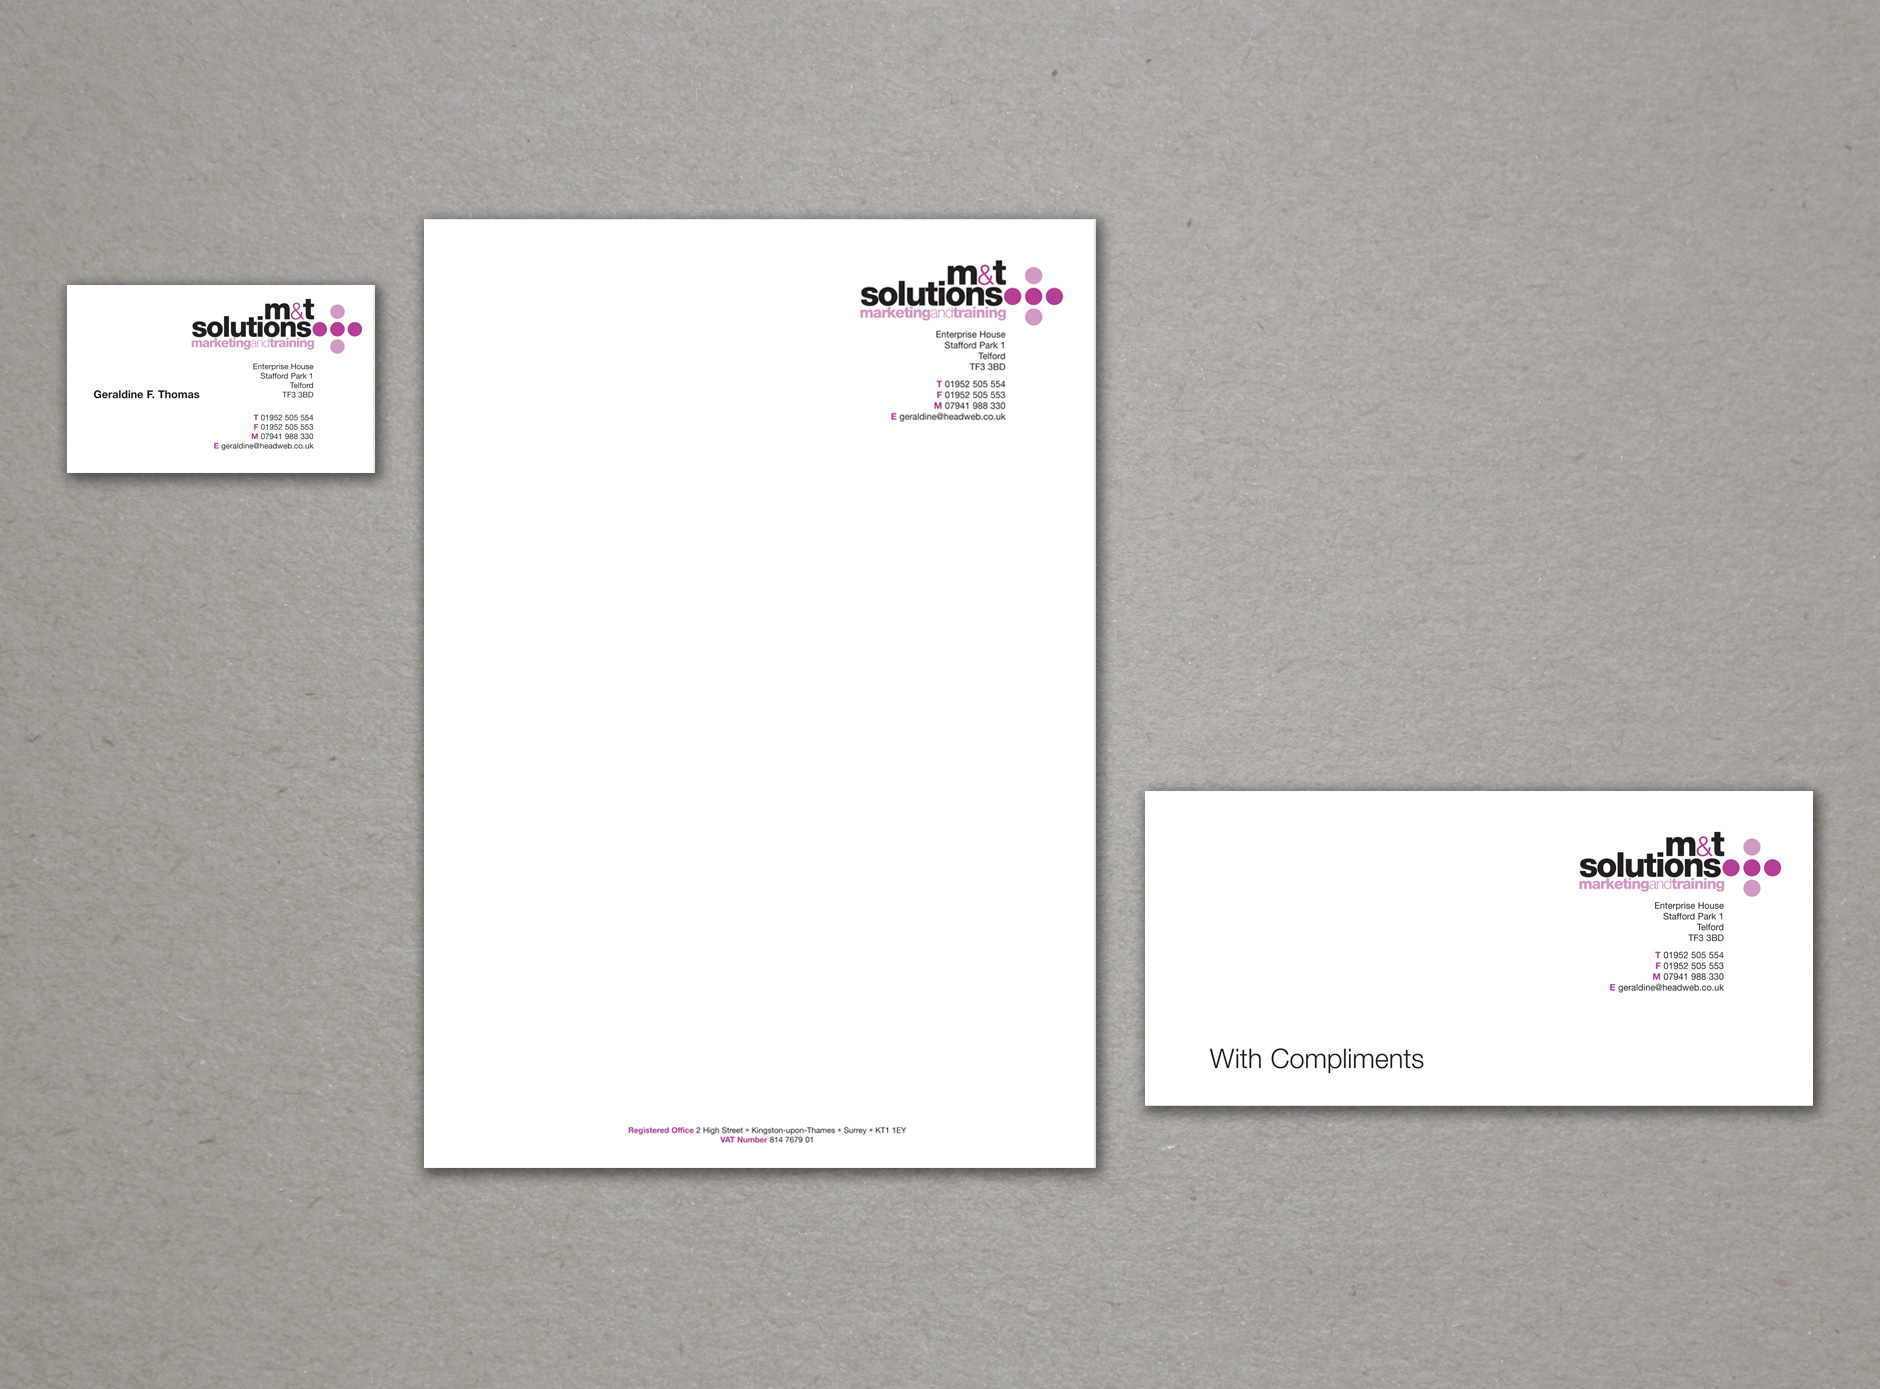 M&T Solutions identity